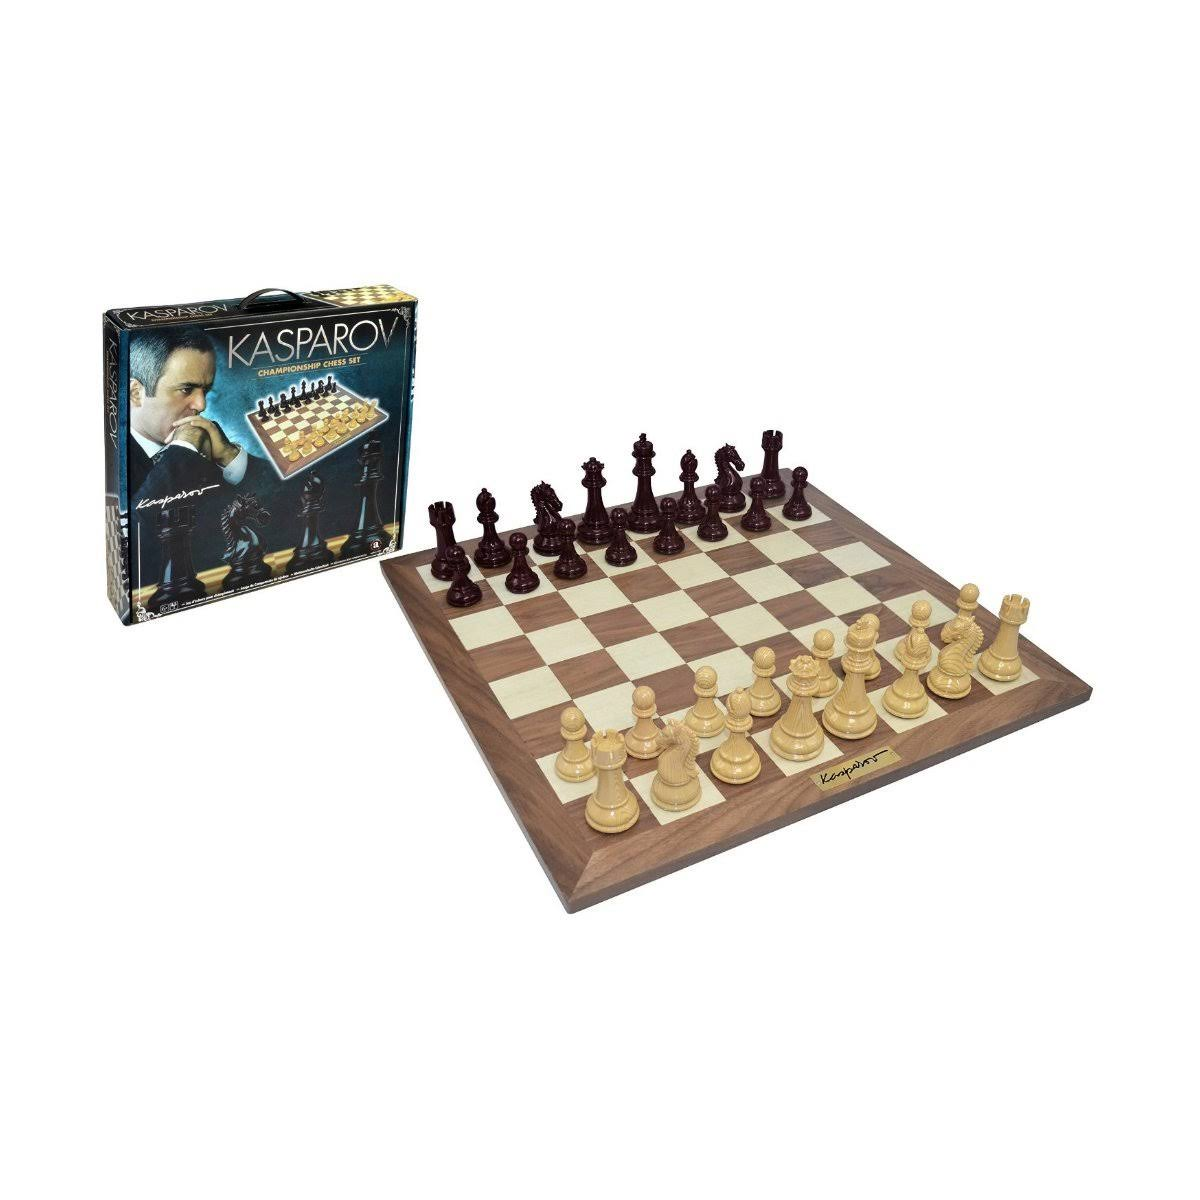 Kasparov Championship Chess Set Game